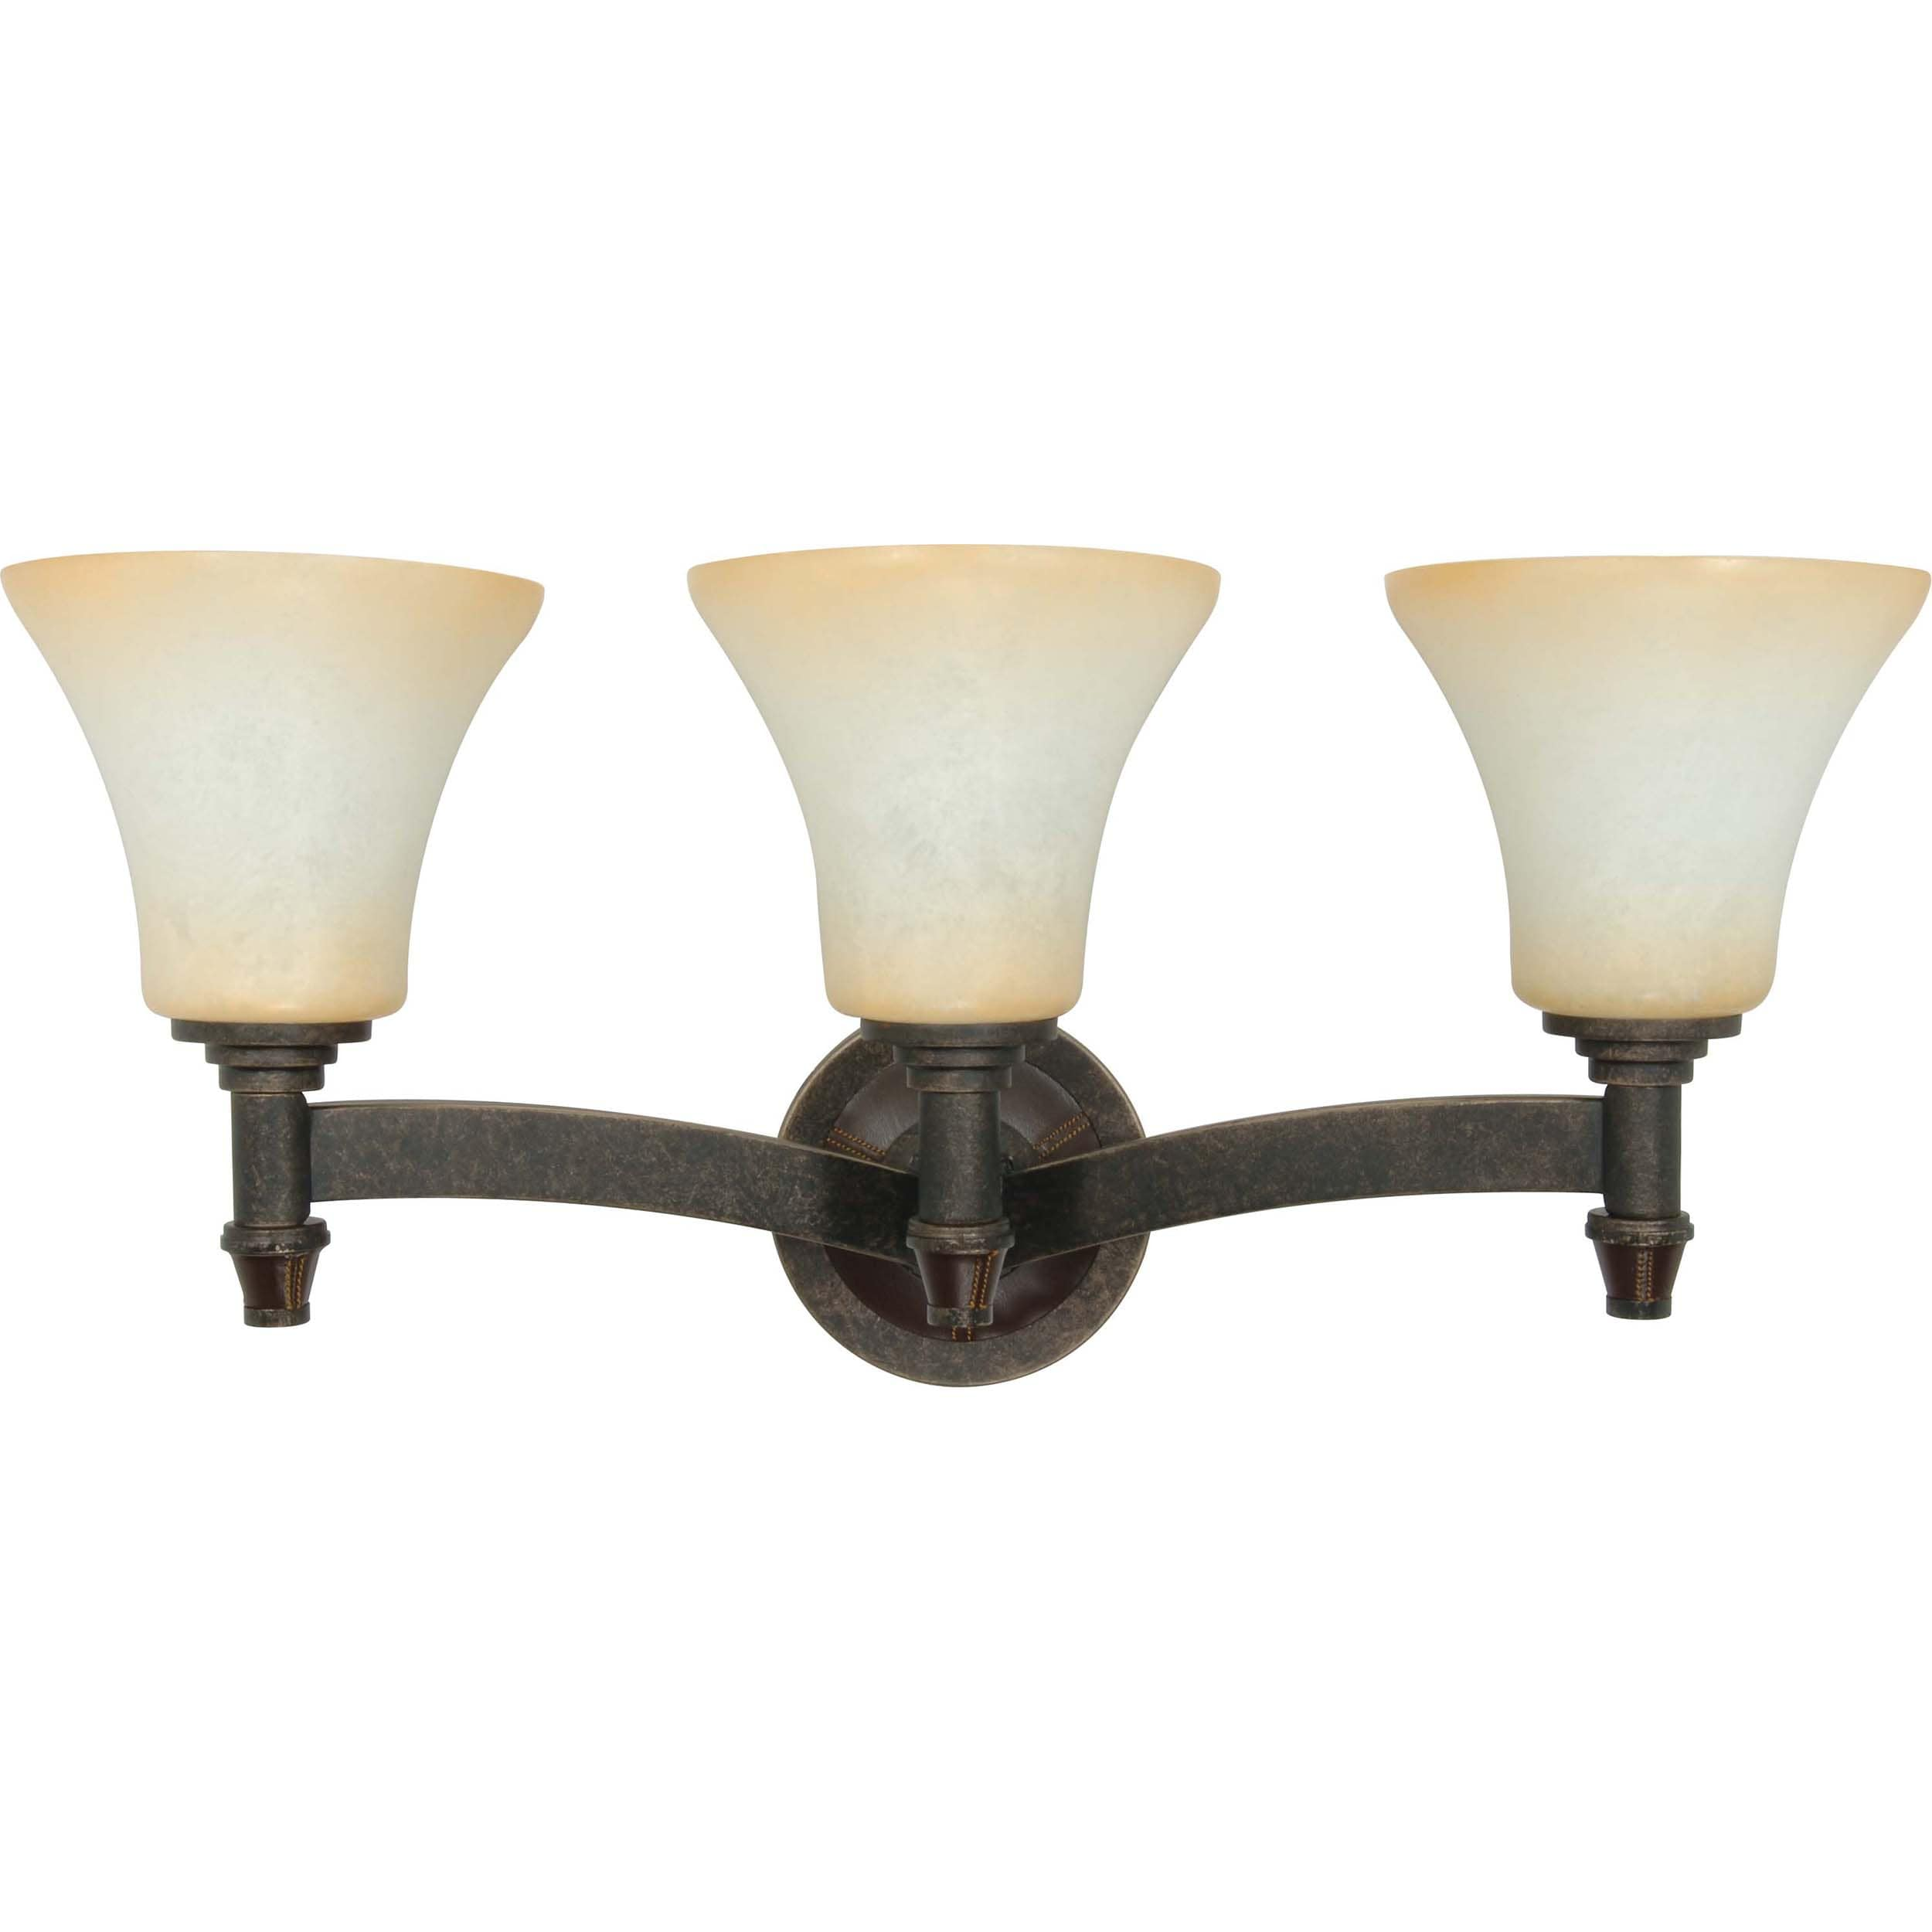 Viceroy 3 Light Wall Vanity Golden Umber with Burnt Sienna Glass